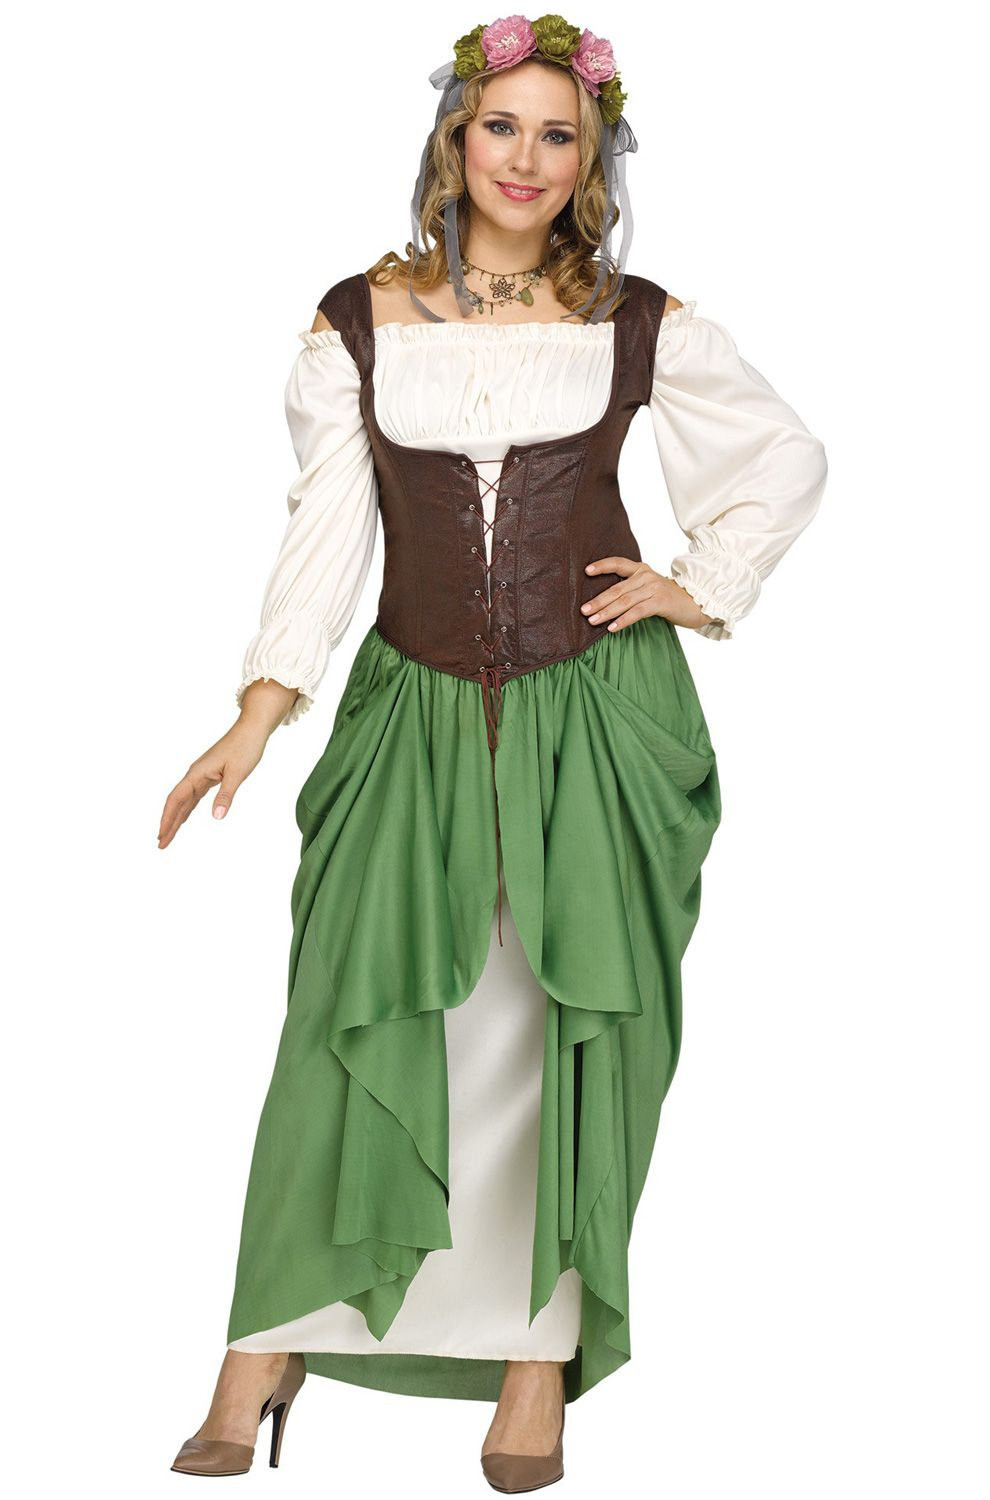 bec0d846212 Check out the deal on Serving Wench Plus Size Costume - FREE SHIPPING at  PureCostumes.com